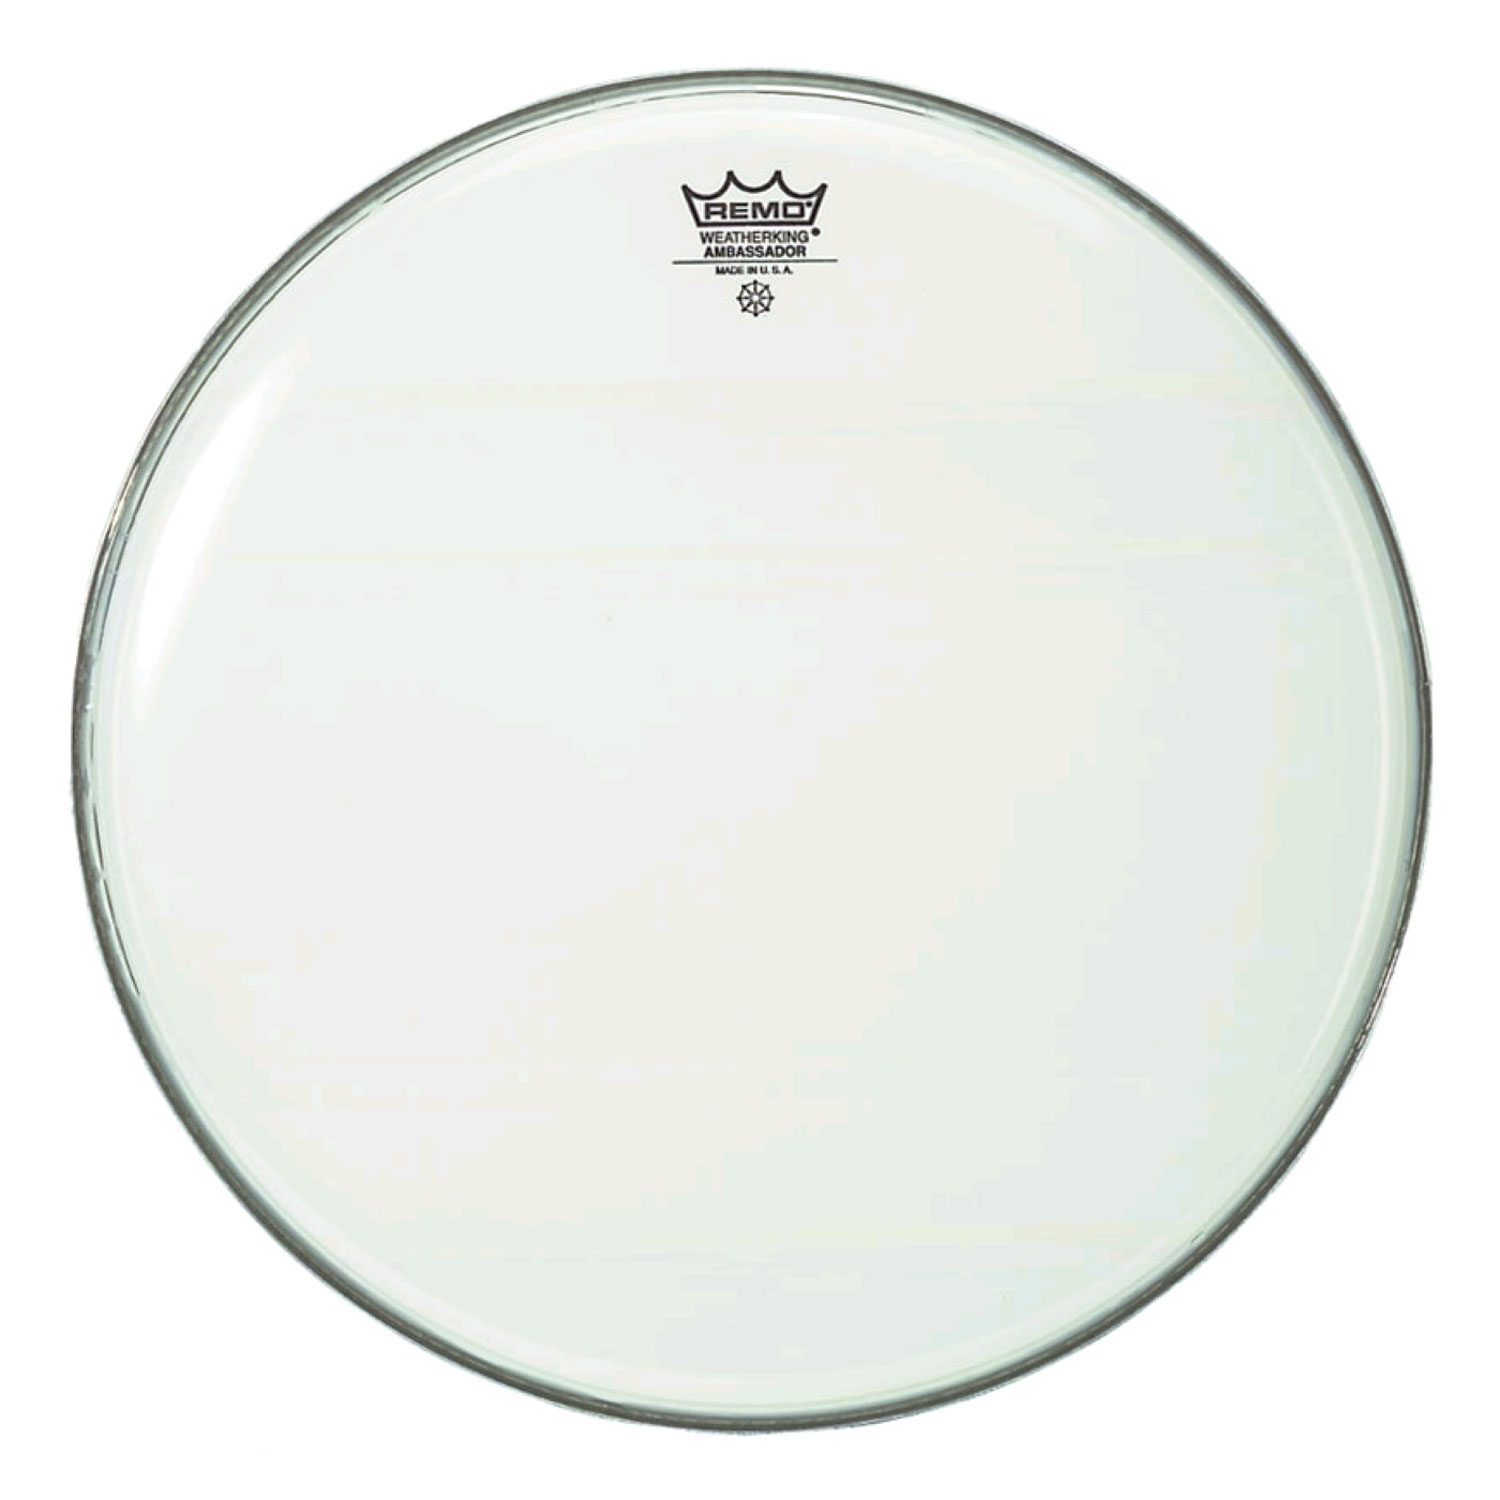 "Remo 14"" Ambassador Smooth White Drum Head"